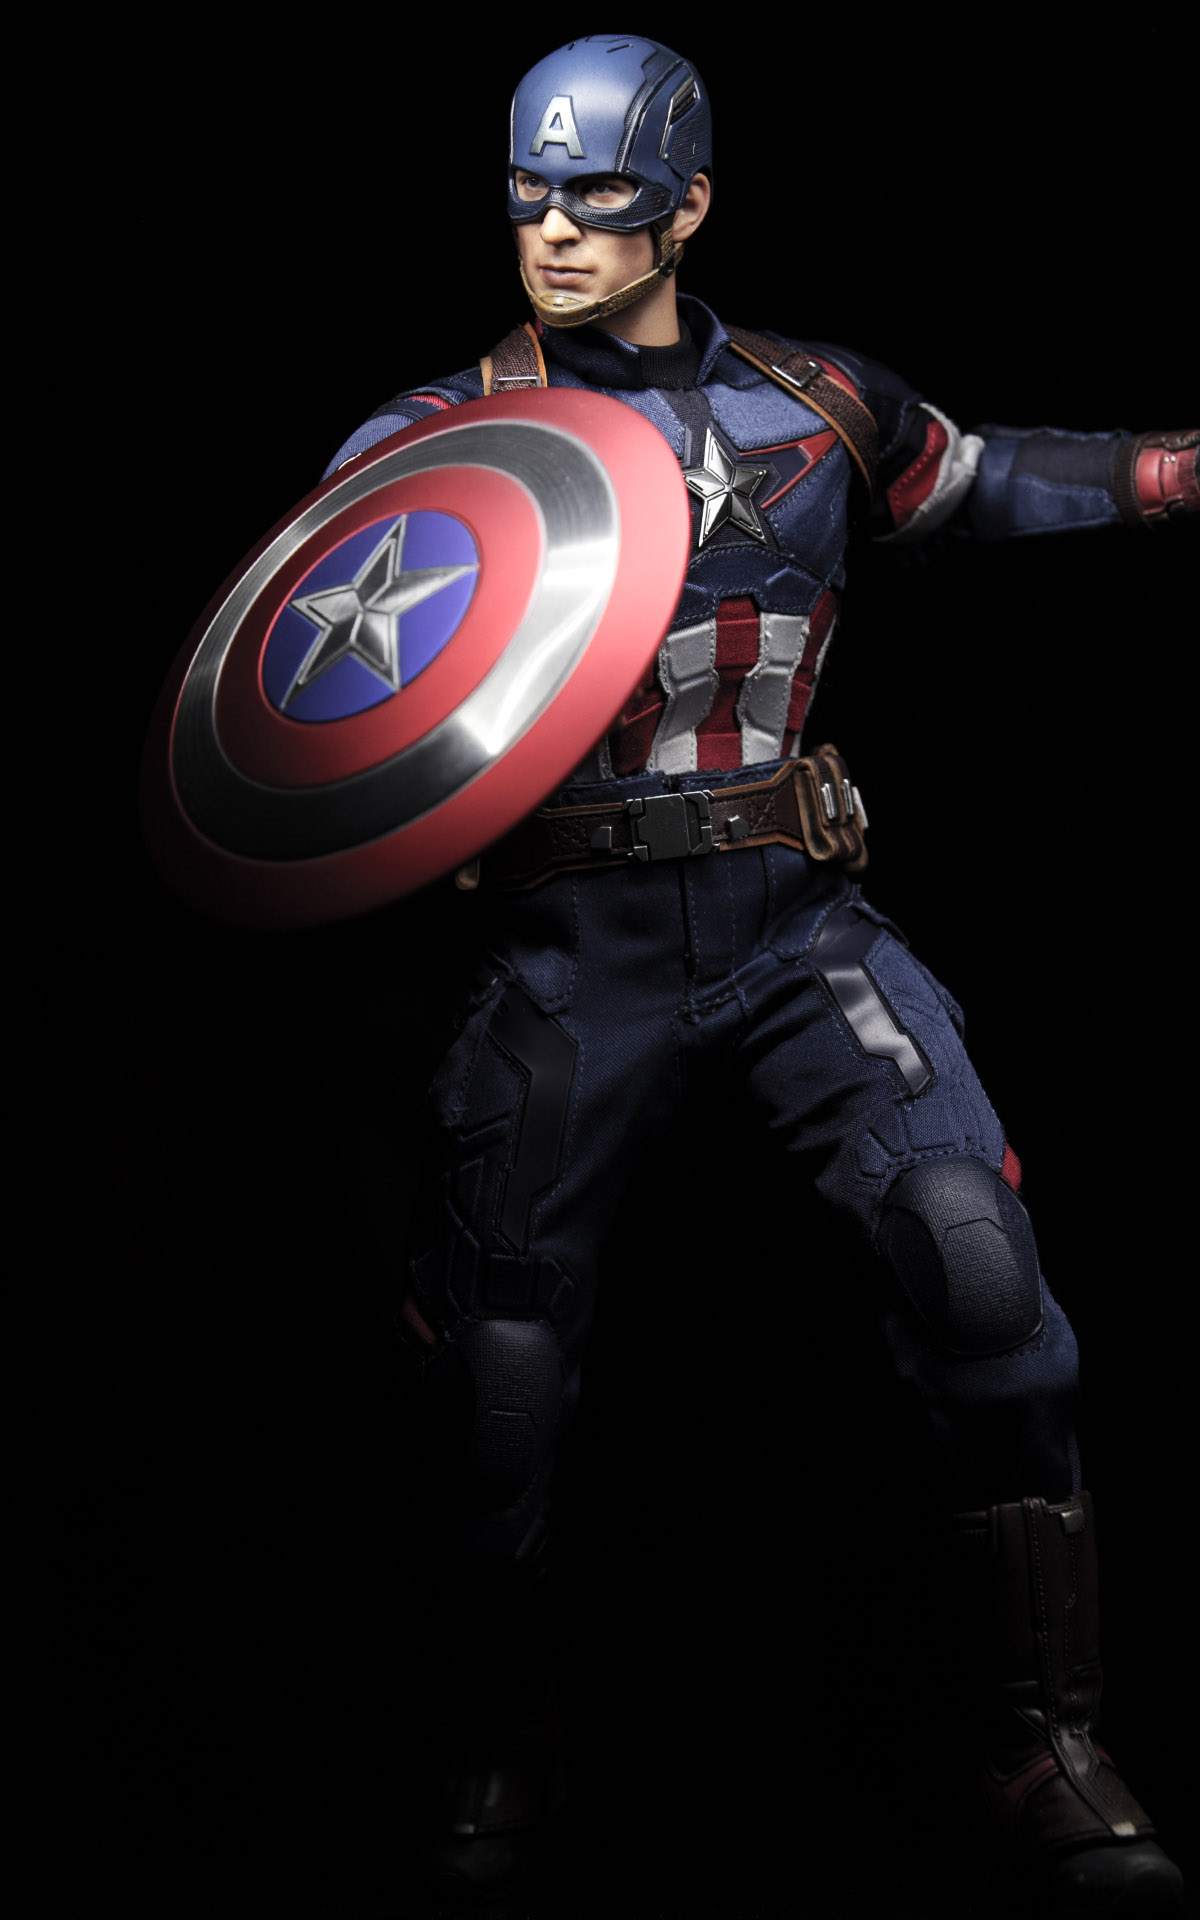 hottoys-avengers-age-of-ultron-Captain-America-picture03